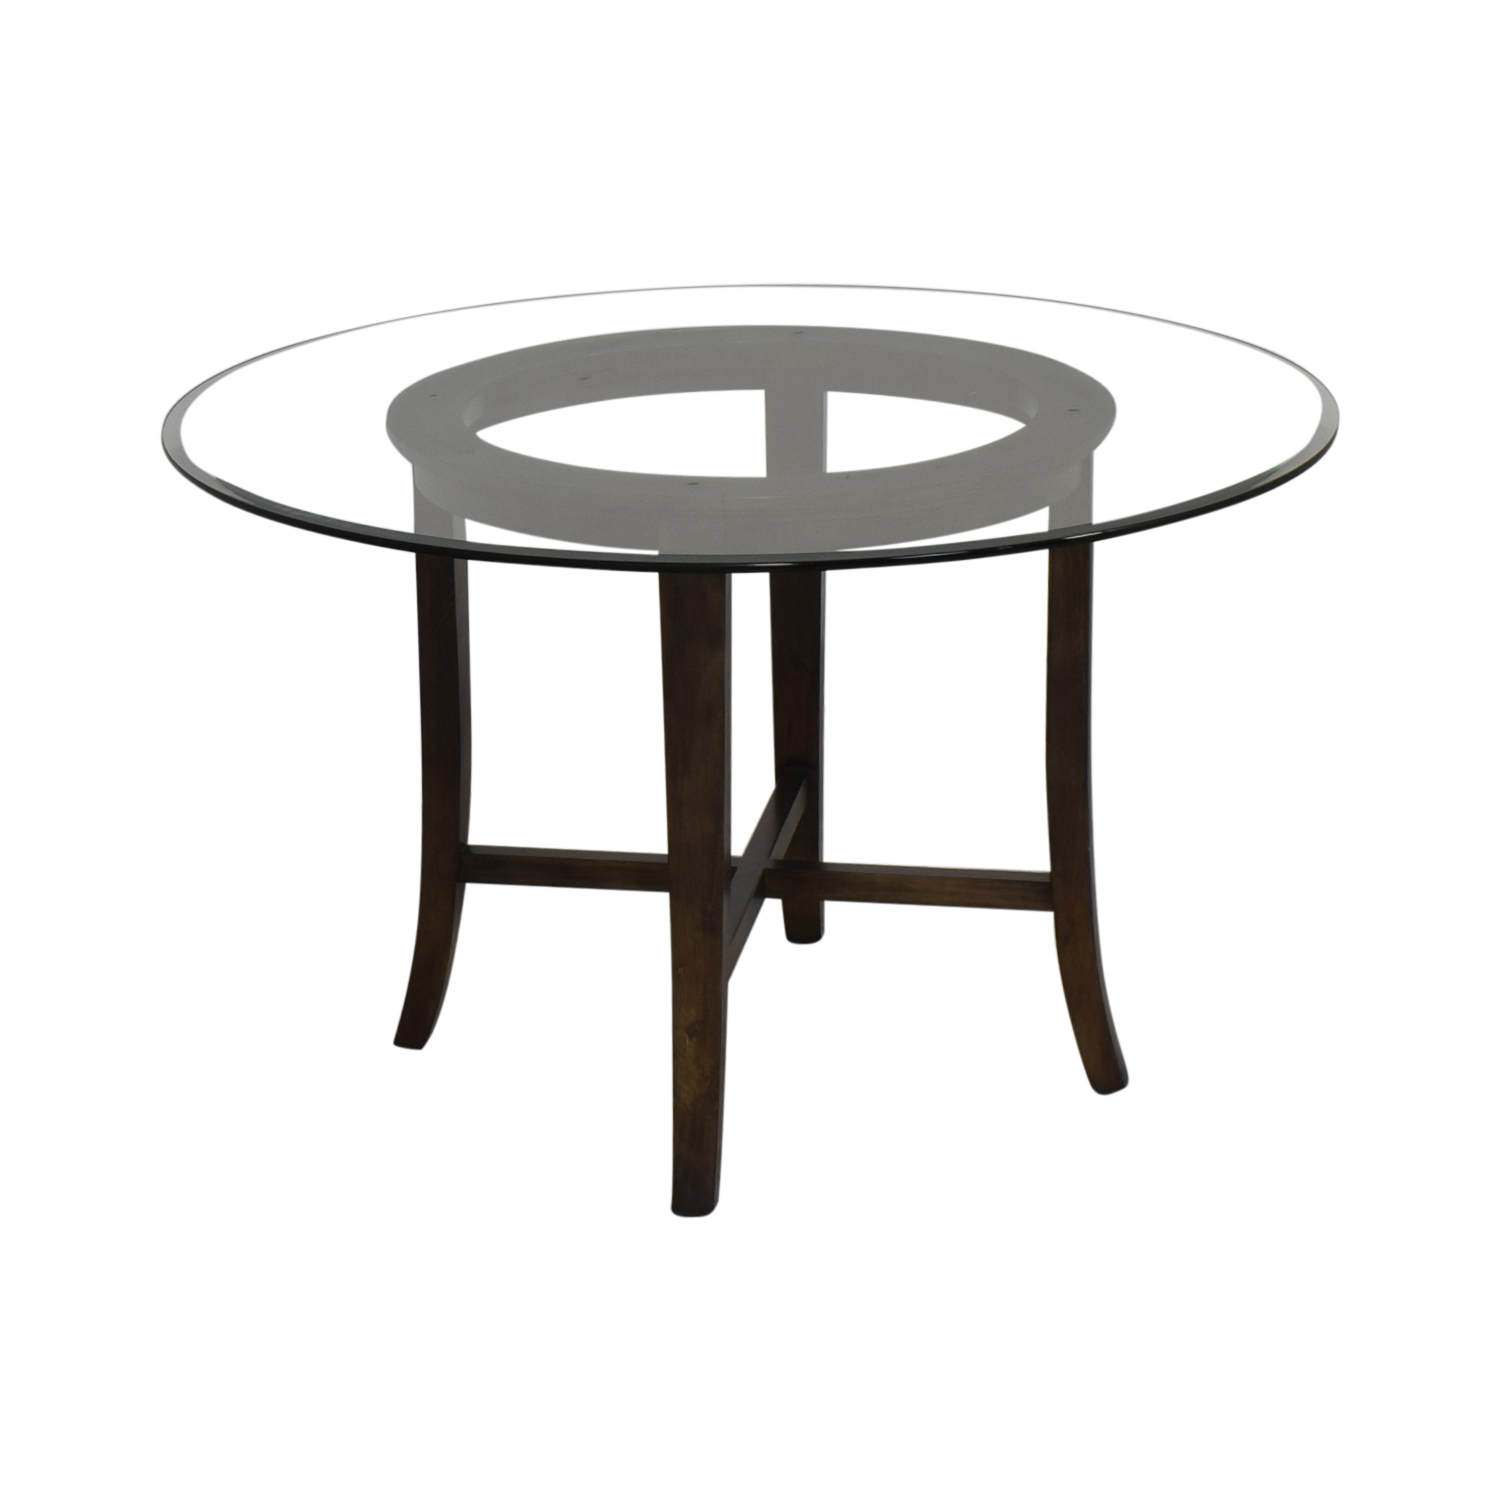 Crate & Barrel Crate & Barrel Halo Round Dining Table for sale